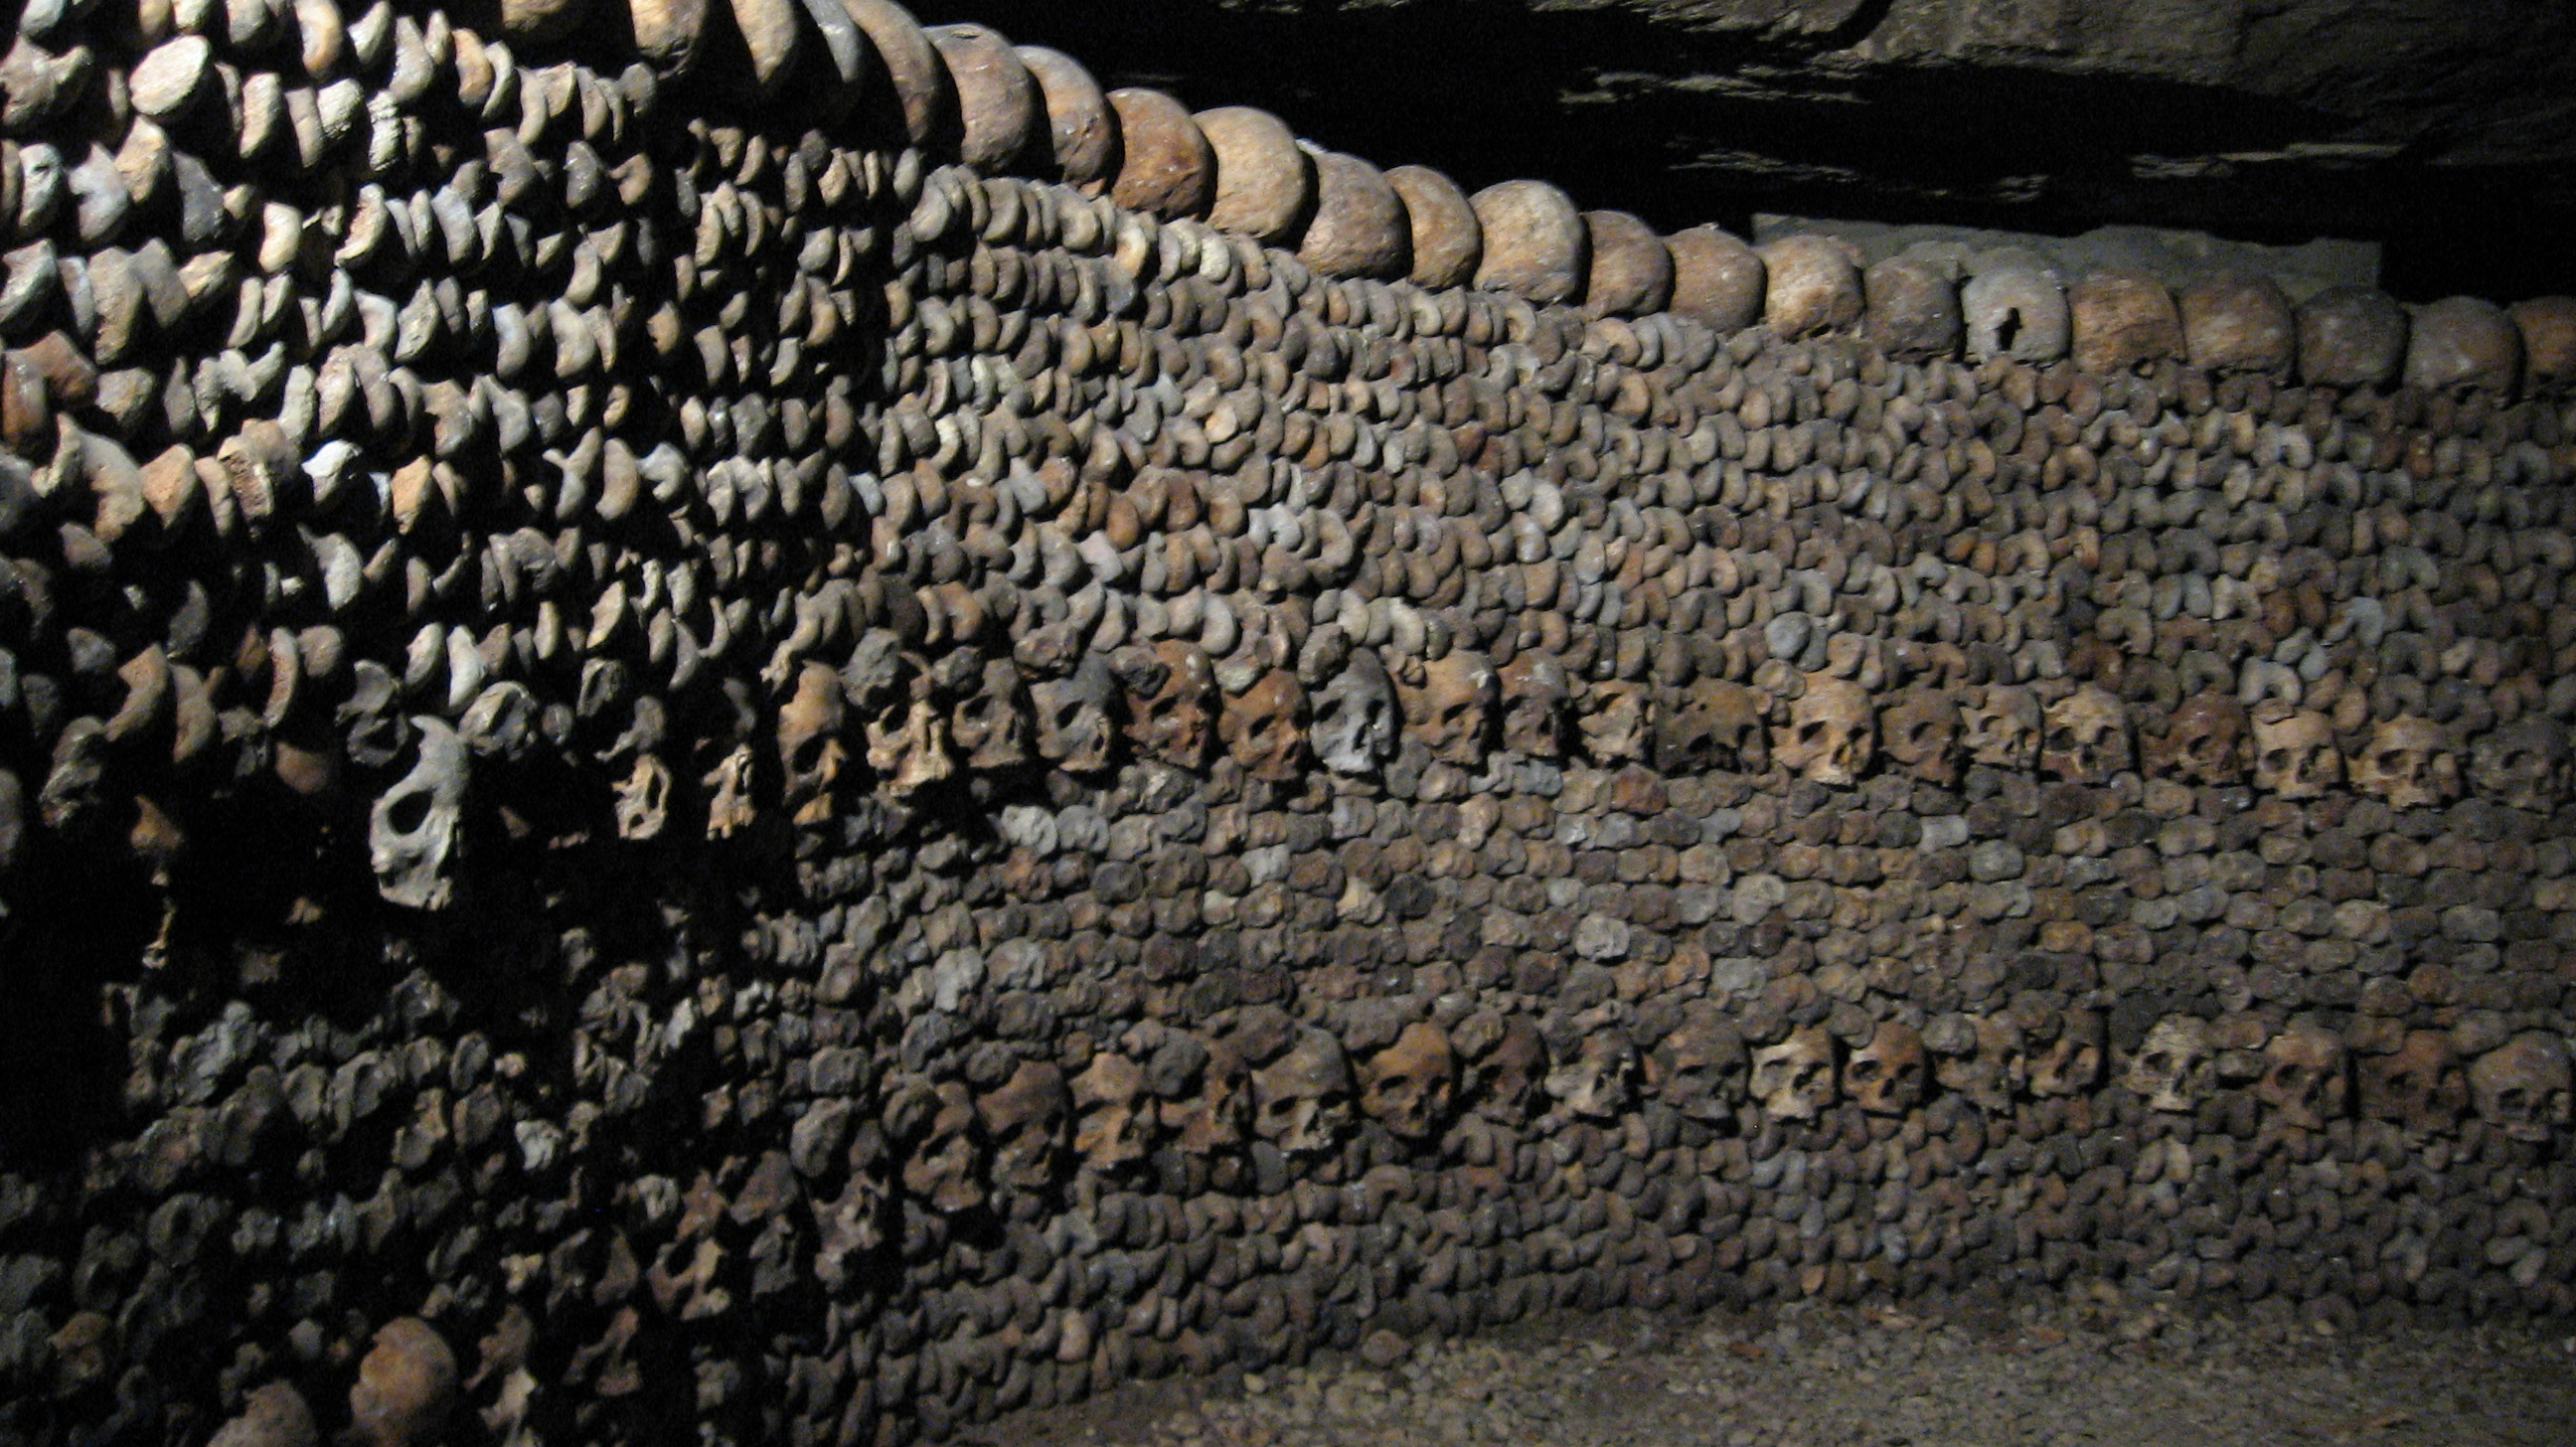 DJJ 1 Catacombes de Paris.jpg